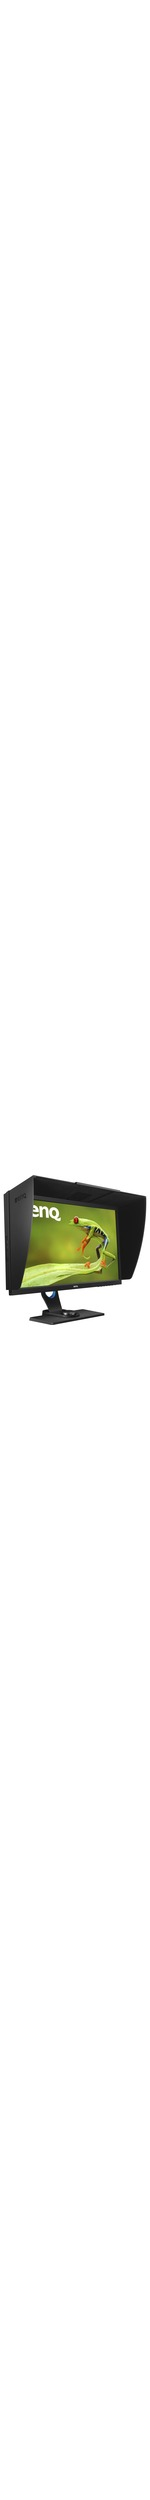 BenQ SW2700PT  27And#34; LED Monitor - 16:9 - 5 ms